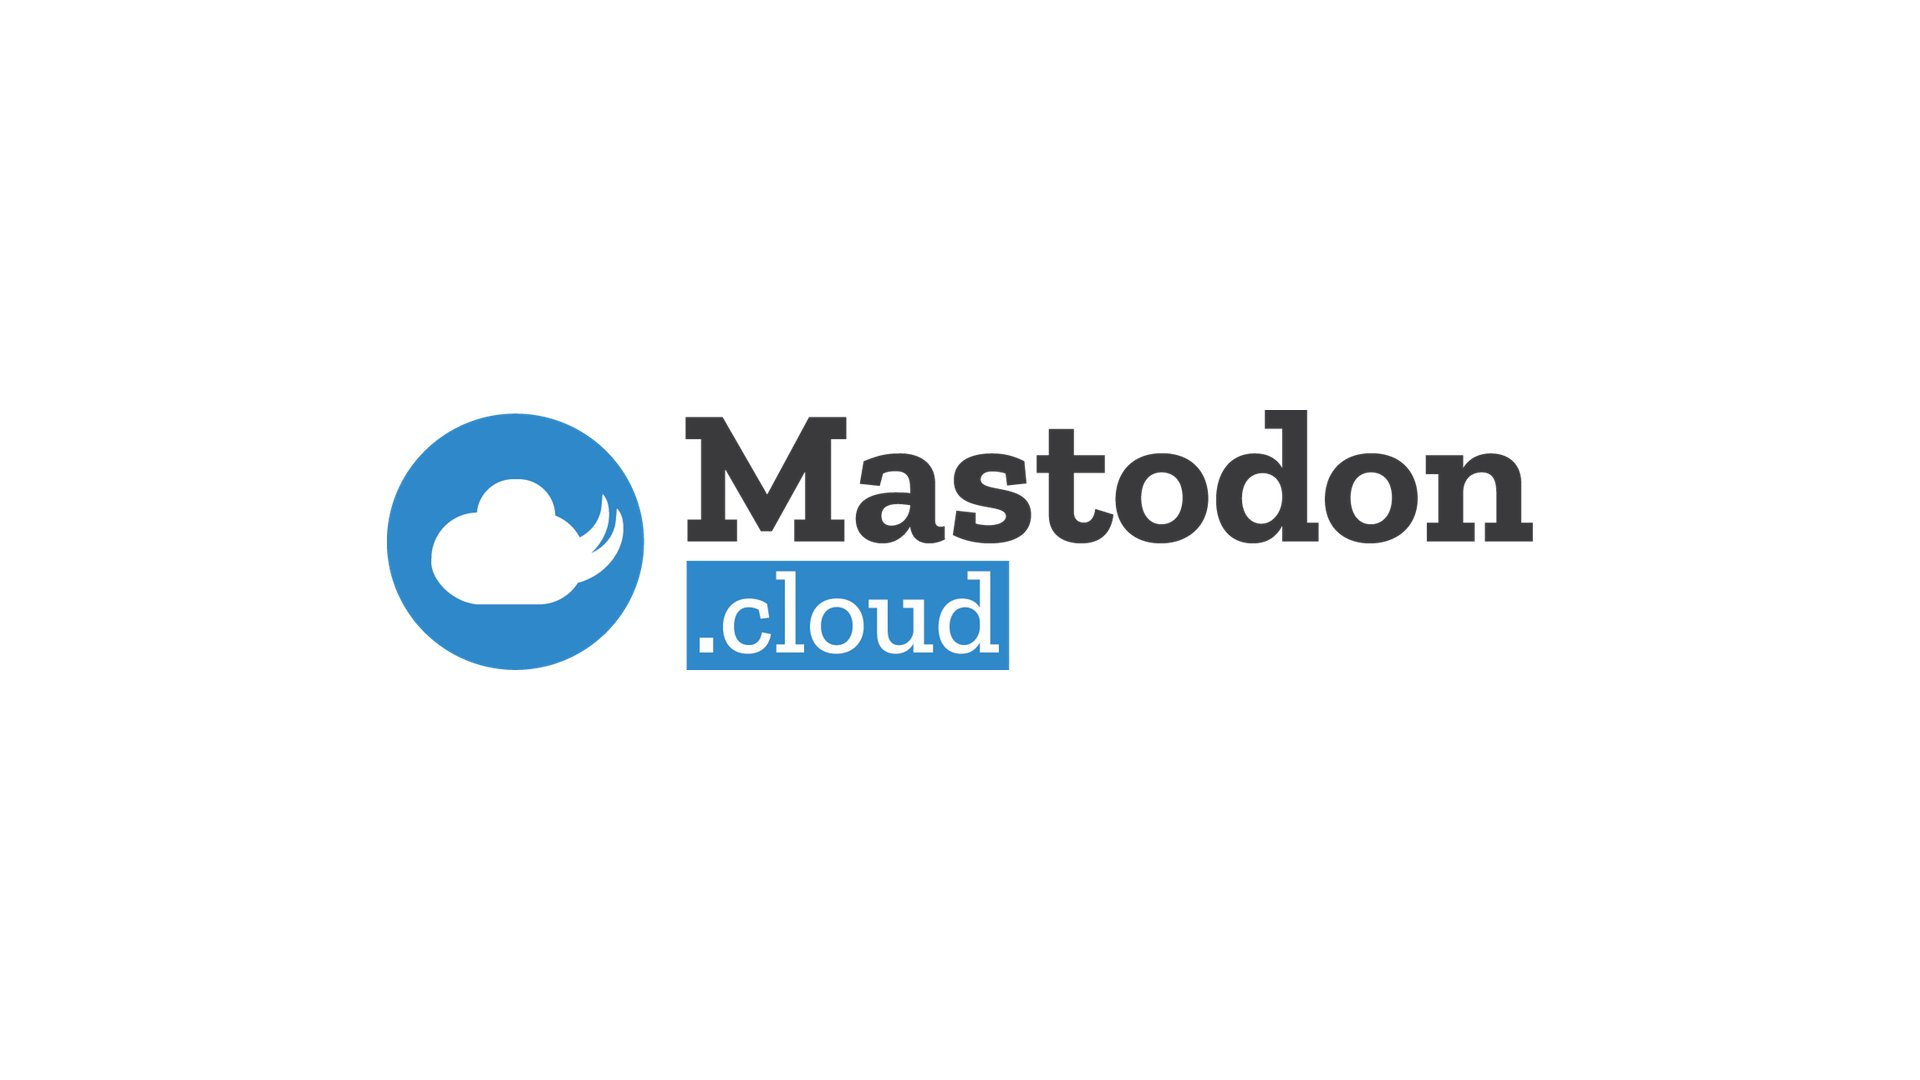 mastodon.cloud